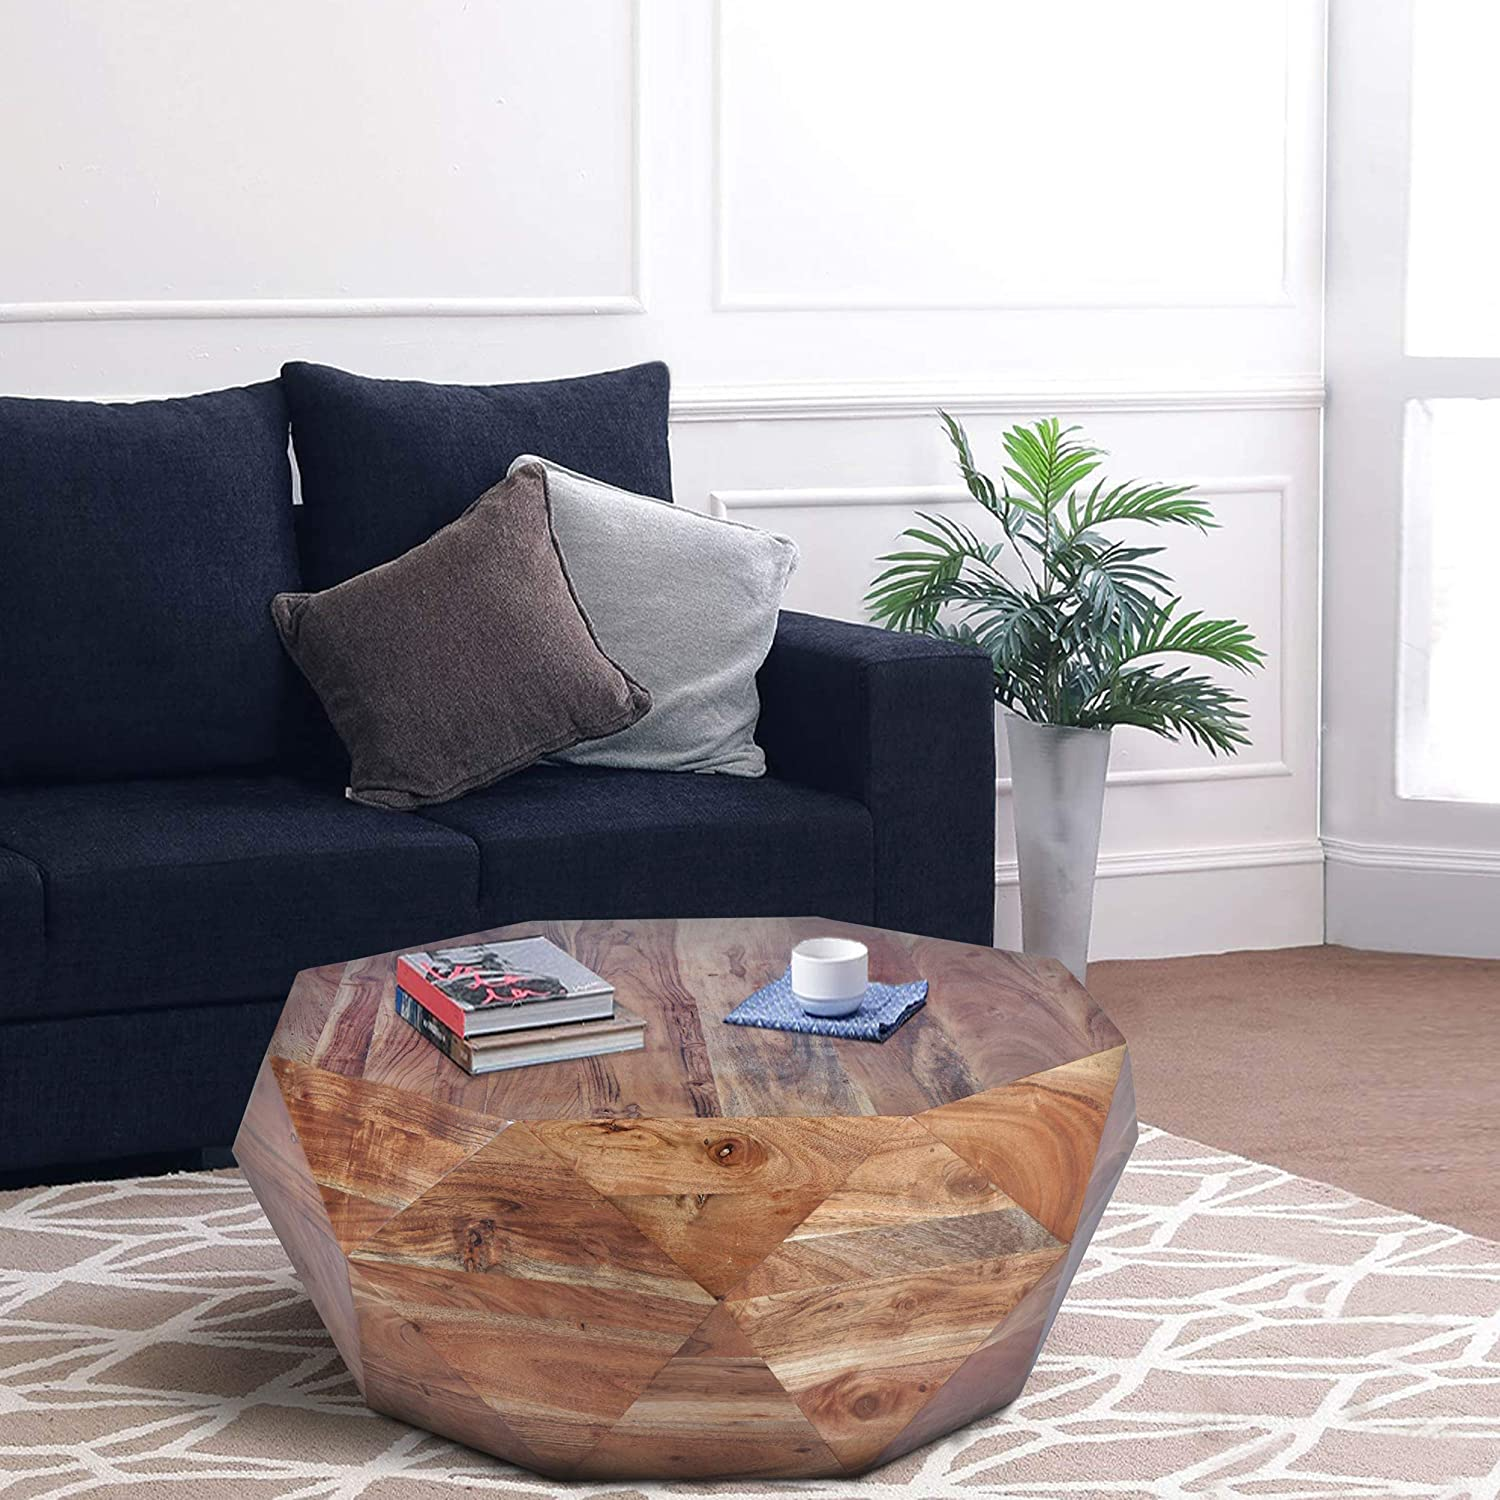 The Urban Port Diamond Shape Acacia Wood Coffee Table with Smooth Top, Natural Brown